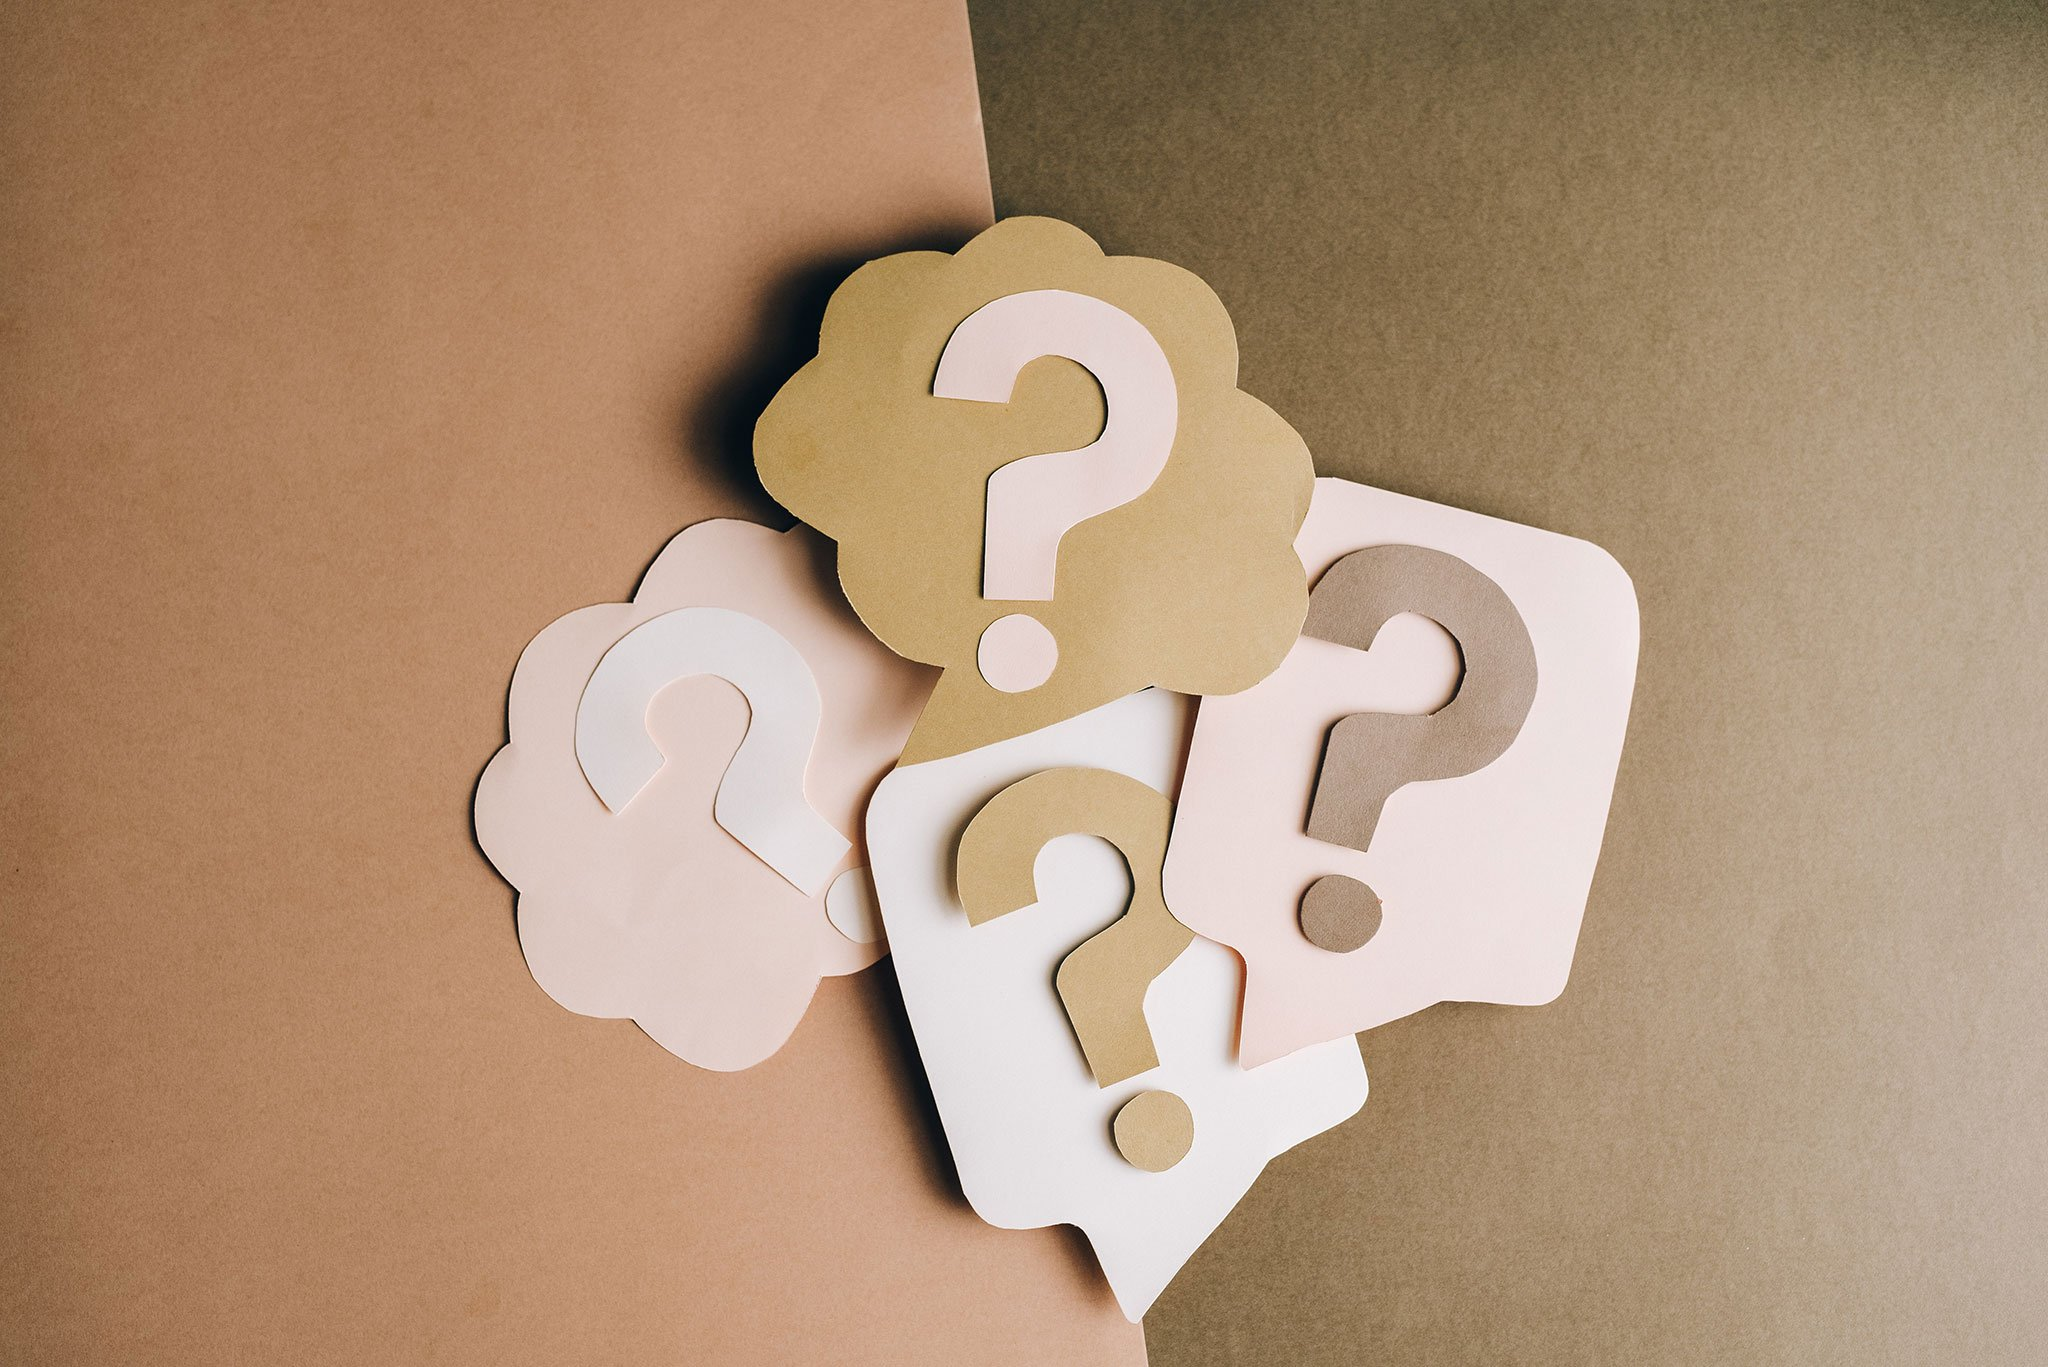 Image of Question Mark cutouts was uploaded for kalika.com